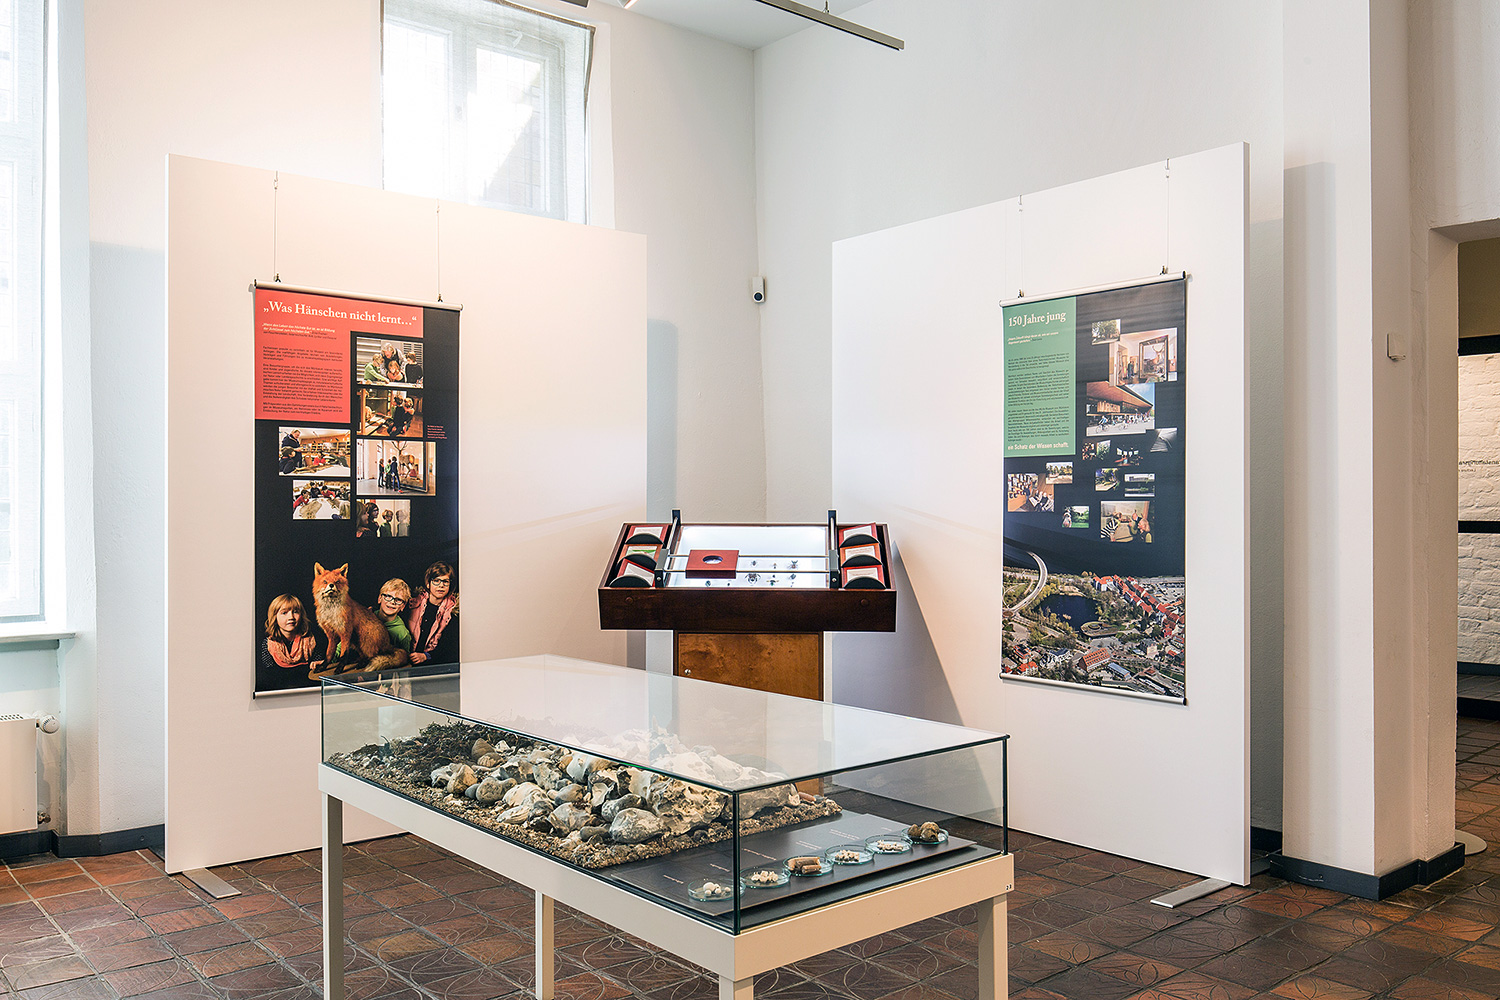 Use of Mila-wall Acoustic for a special exhibition at the Kulturhistorisches Museum Rostock